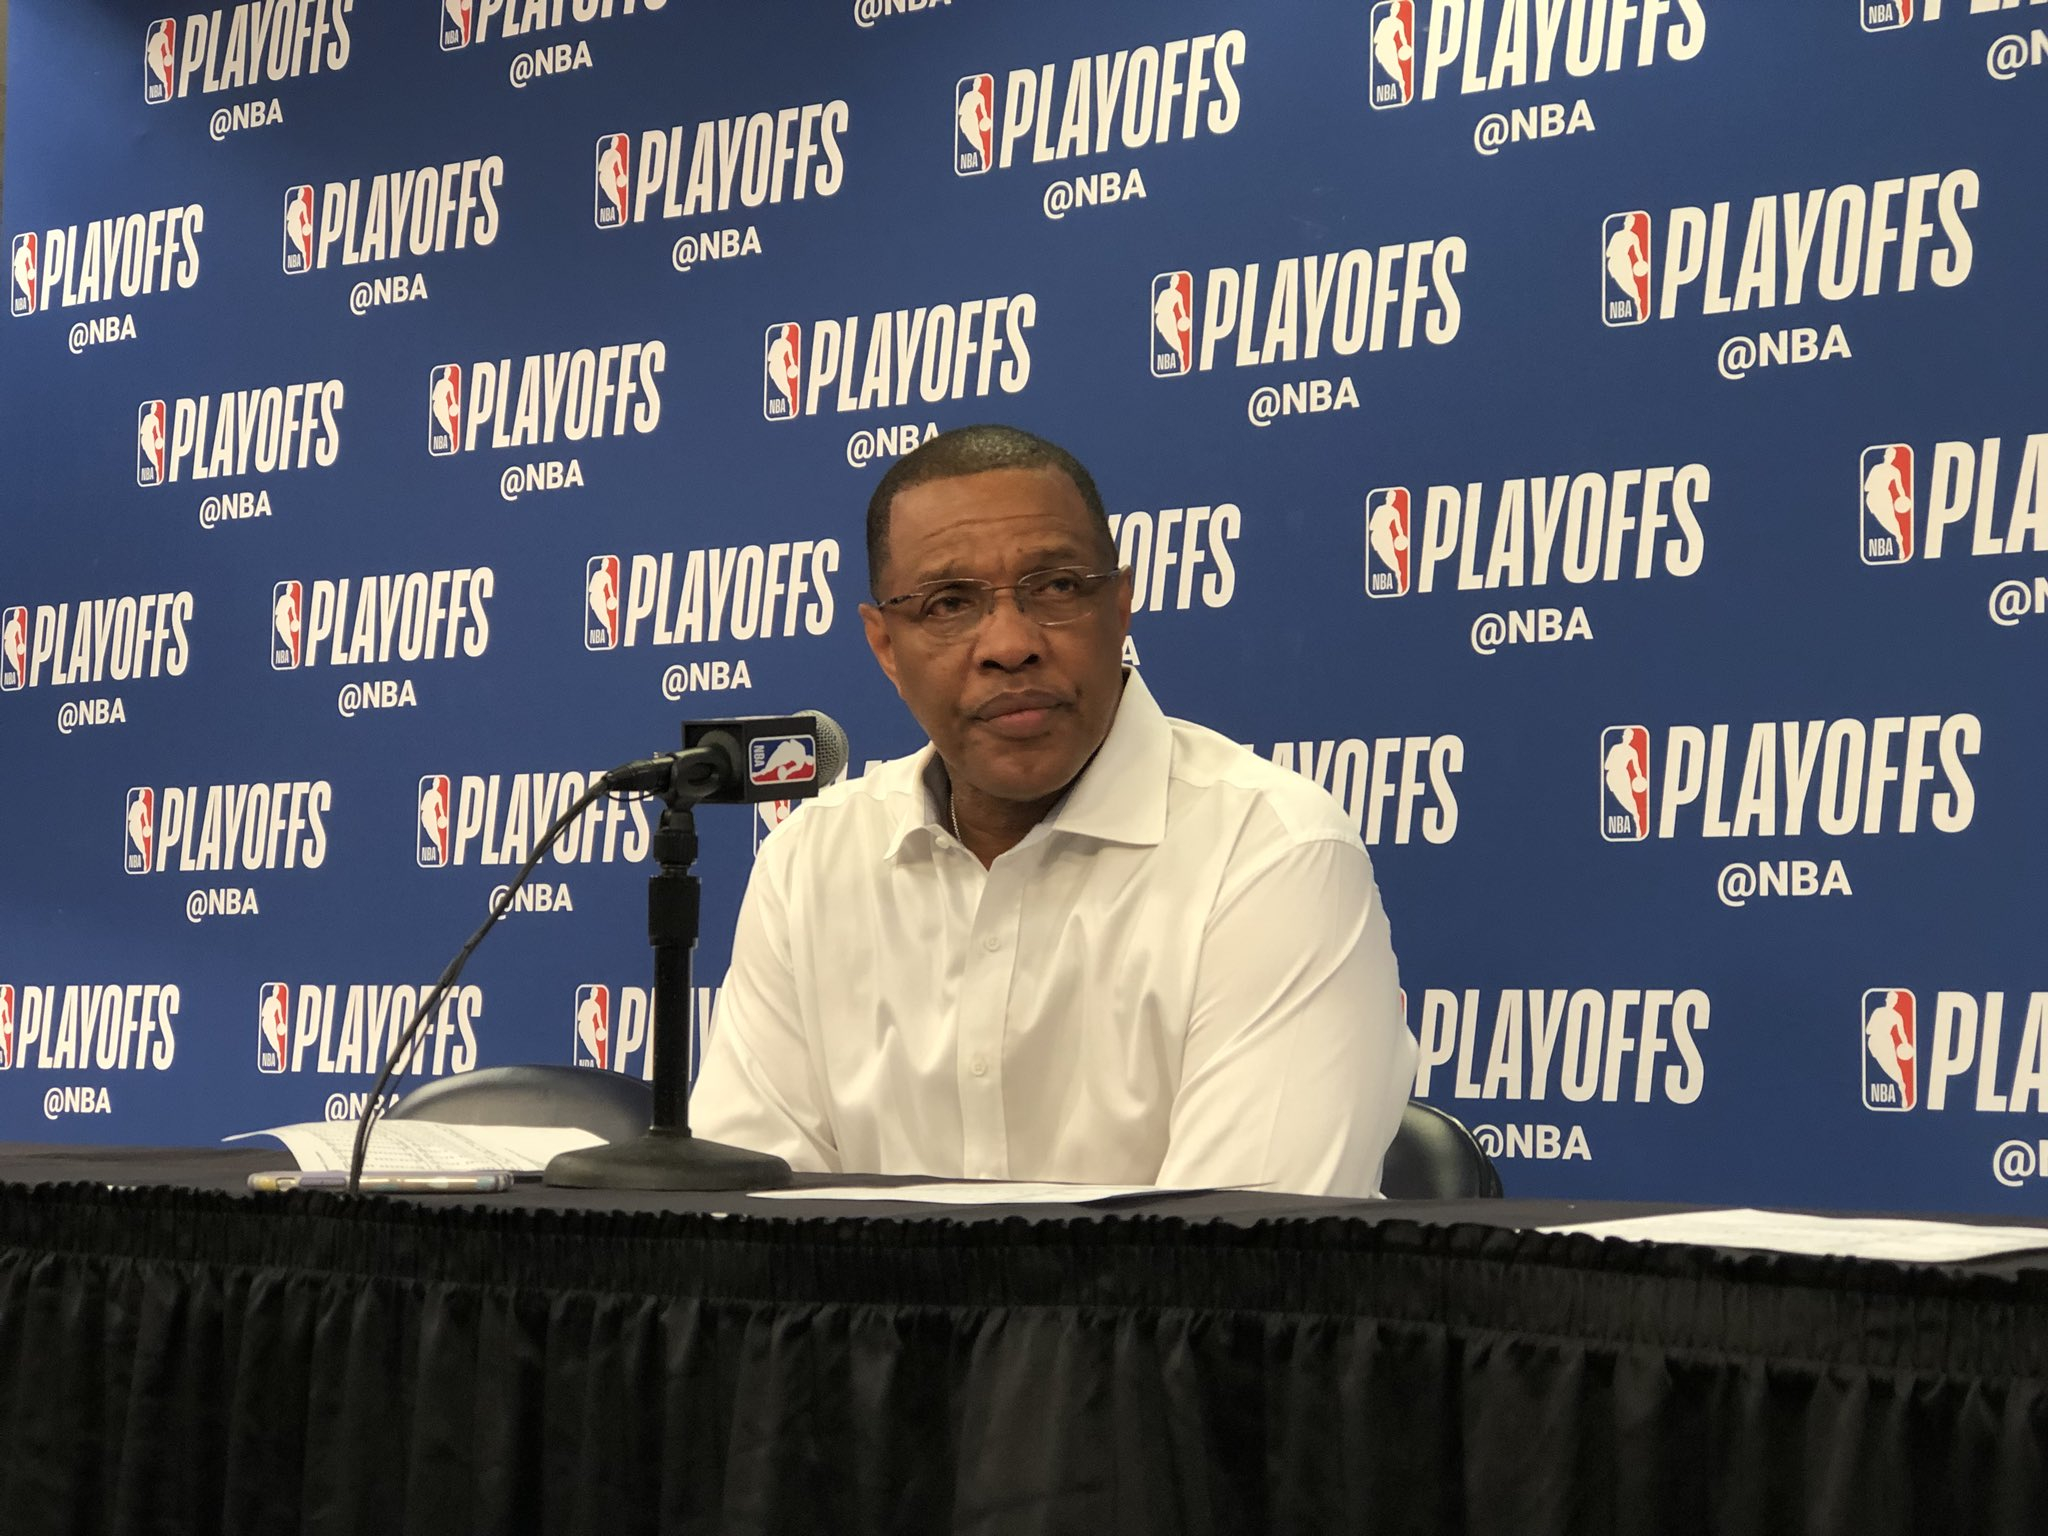 Gentry is speaking with the media after the Game 3 win! Watch live: https://t.co/es6YOqpLj6  (Via @dixiebrewco) https://t.co/iye5uuReBm